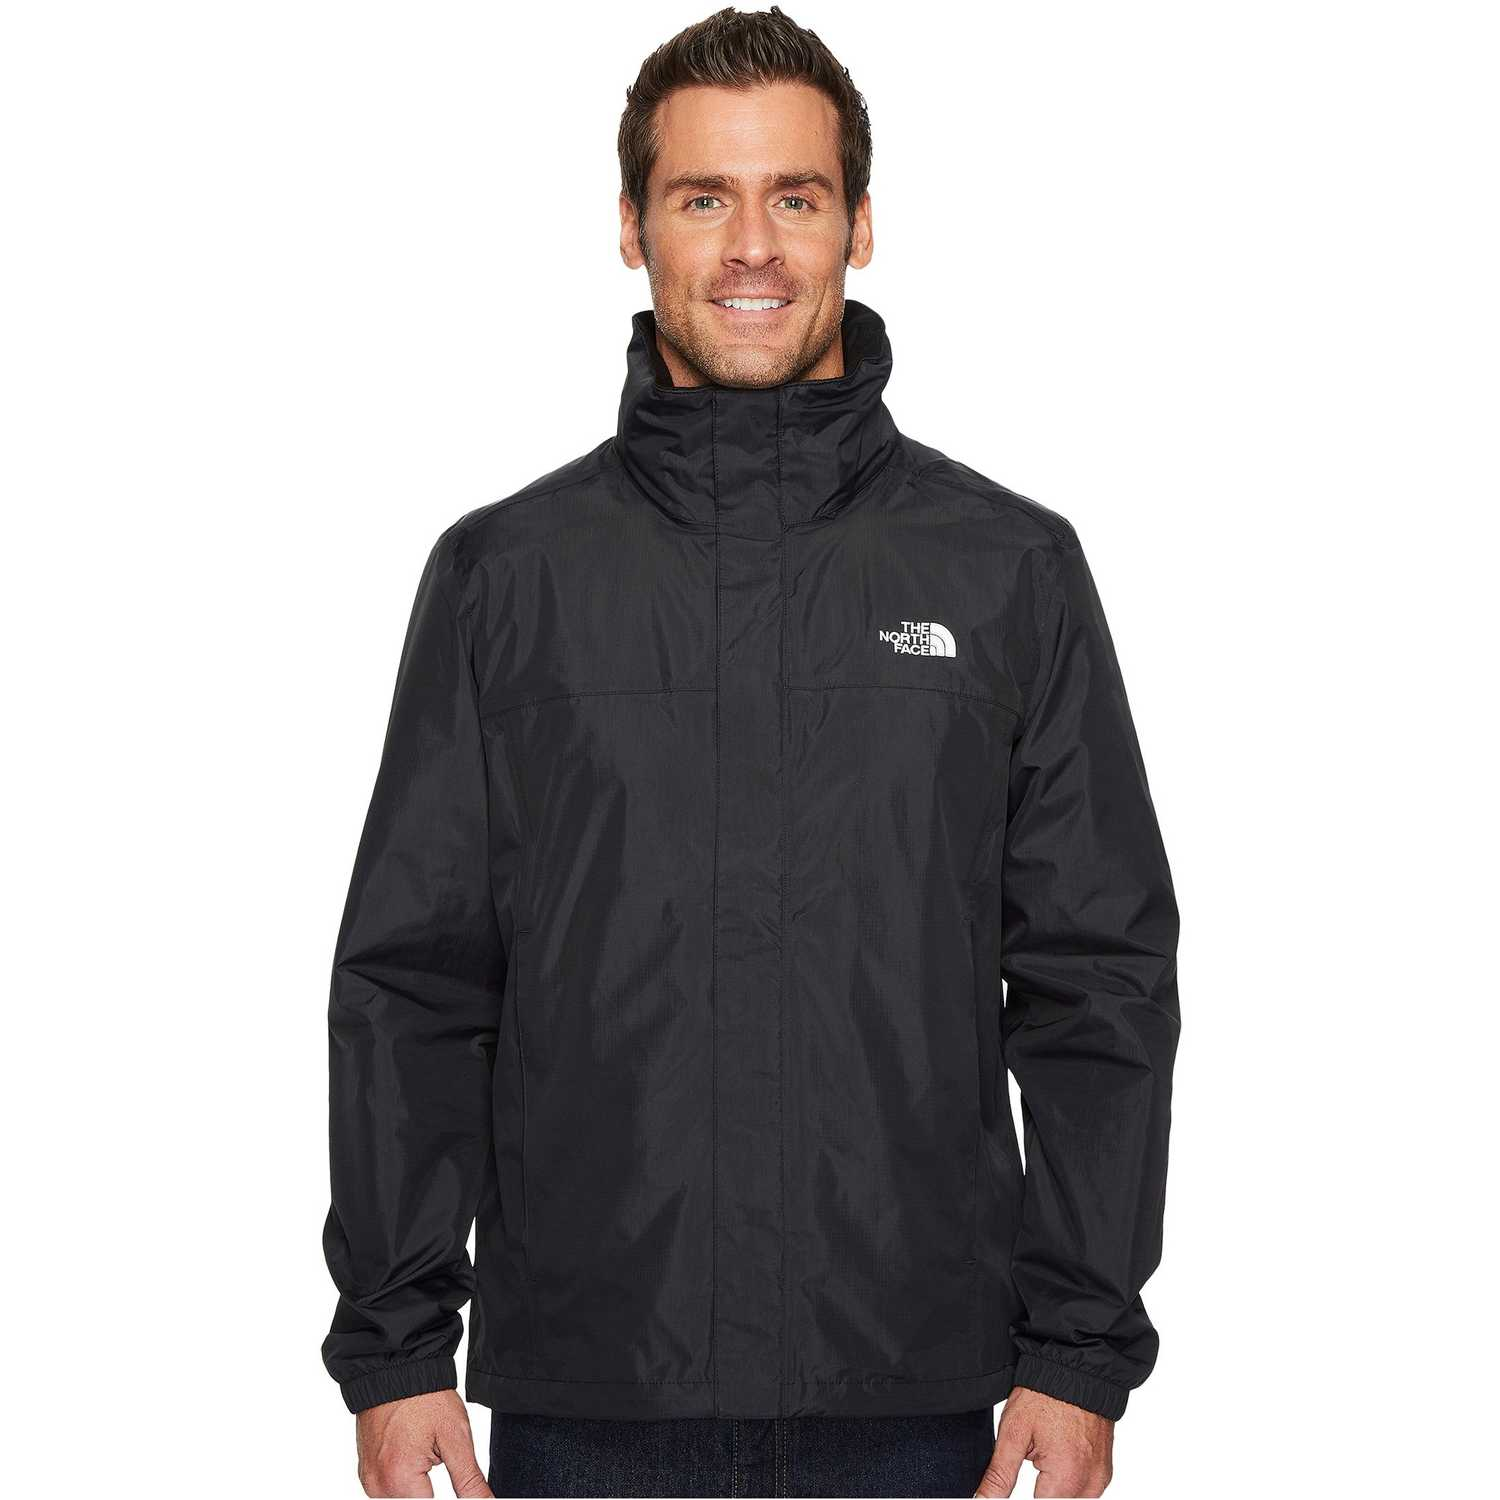 The North Face m resolve 2 jacket Negro Casacas de Atletismo